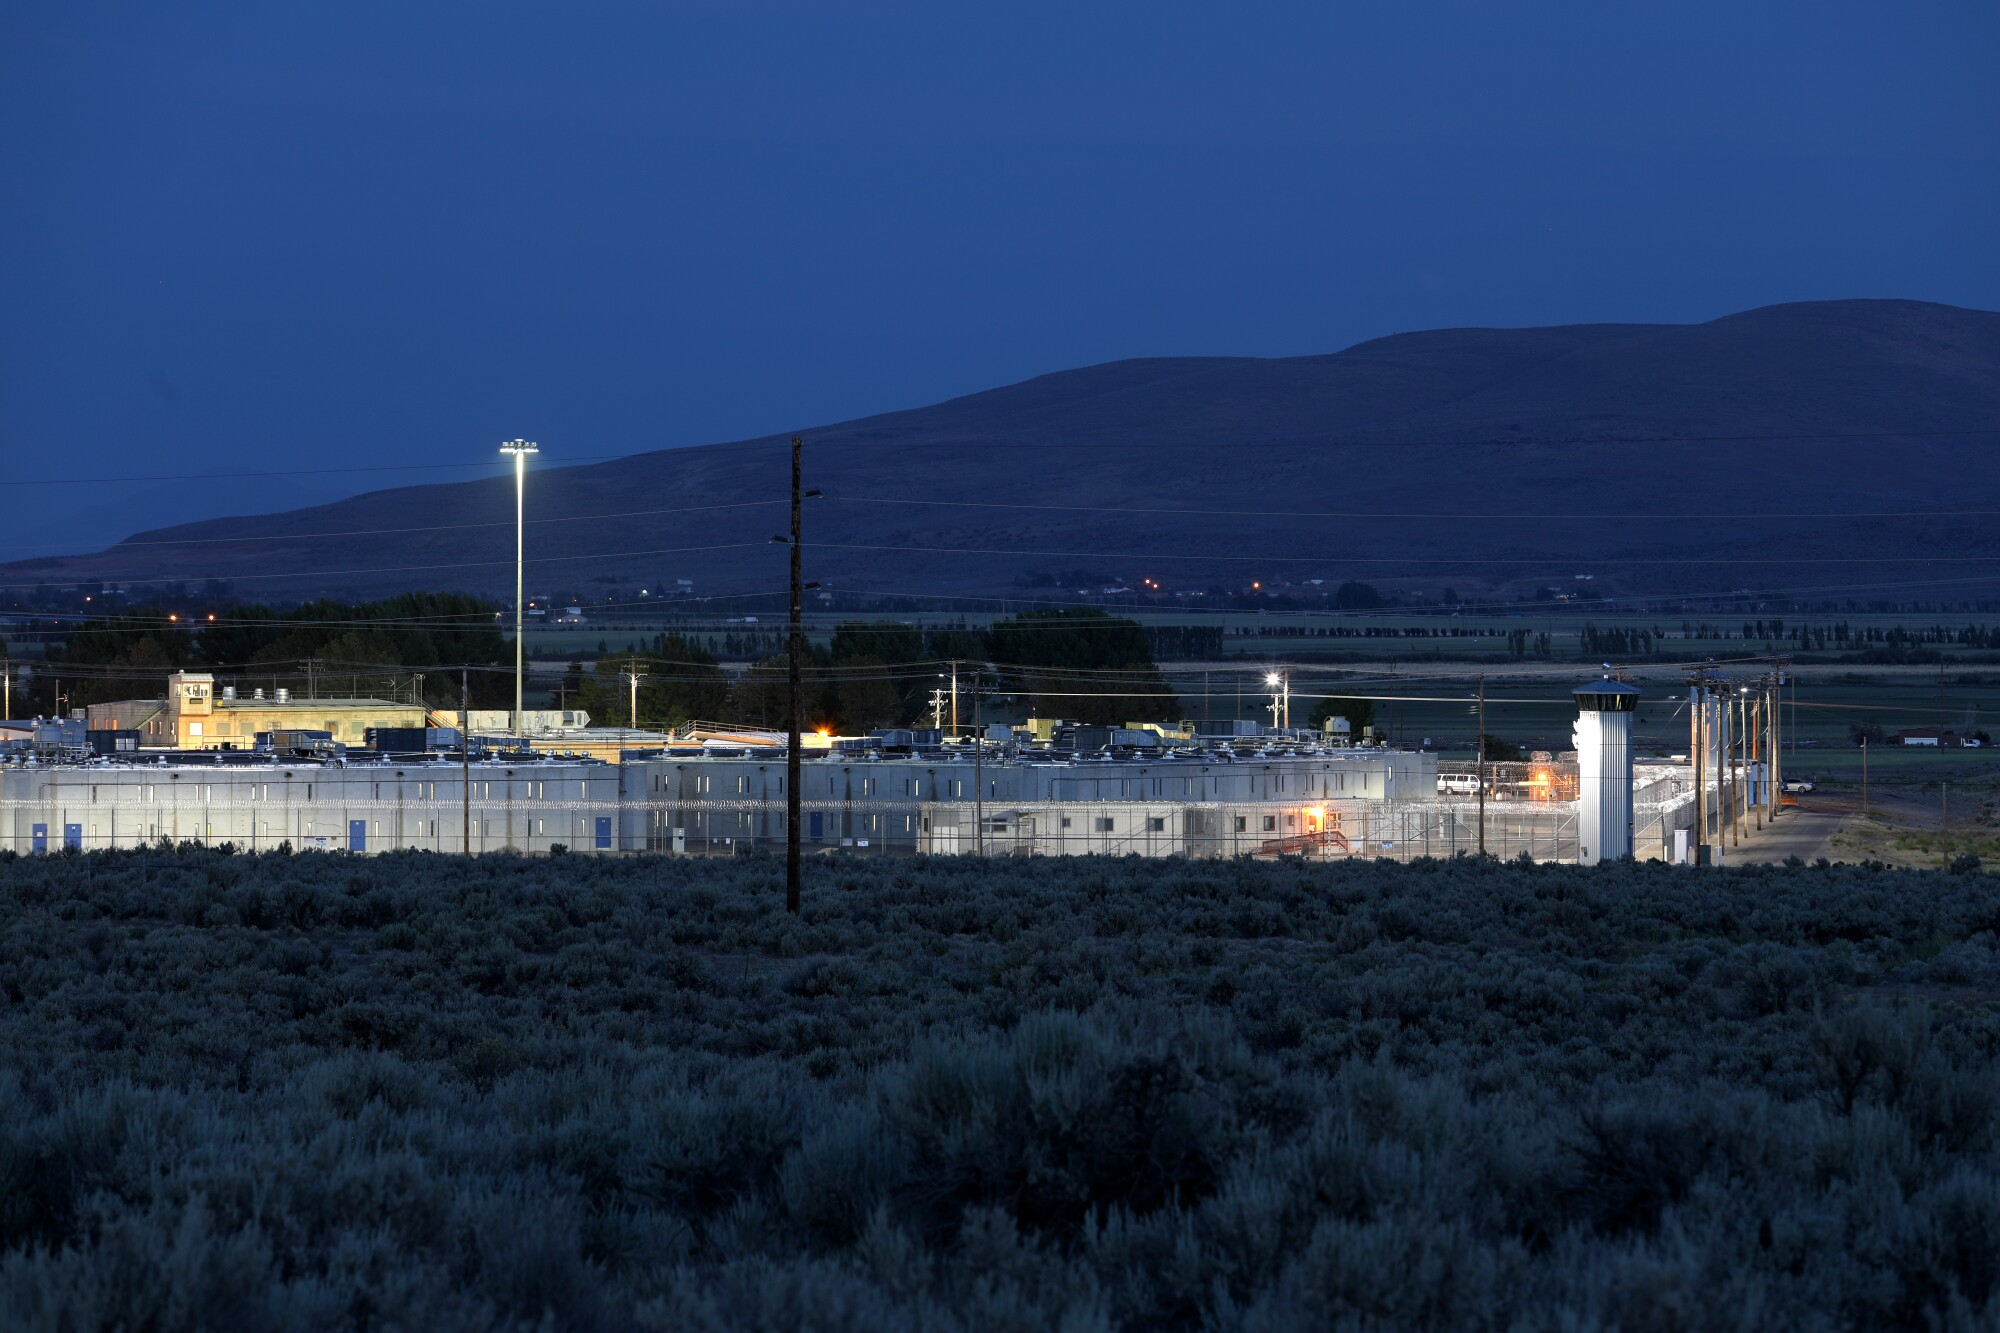 A view from a distance of a fence-enclosed prison at dusk.